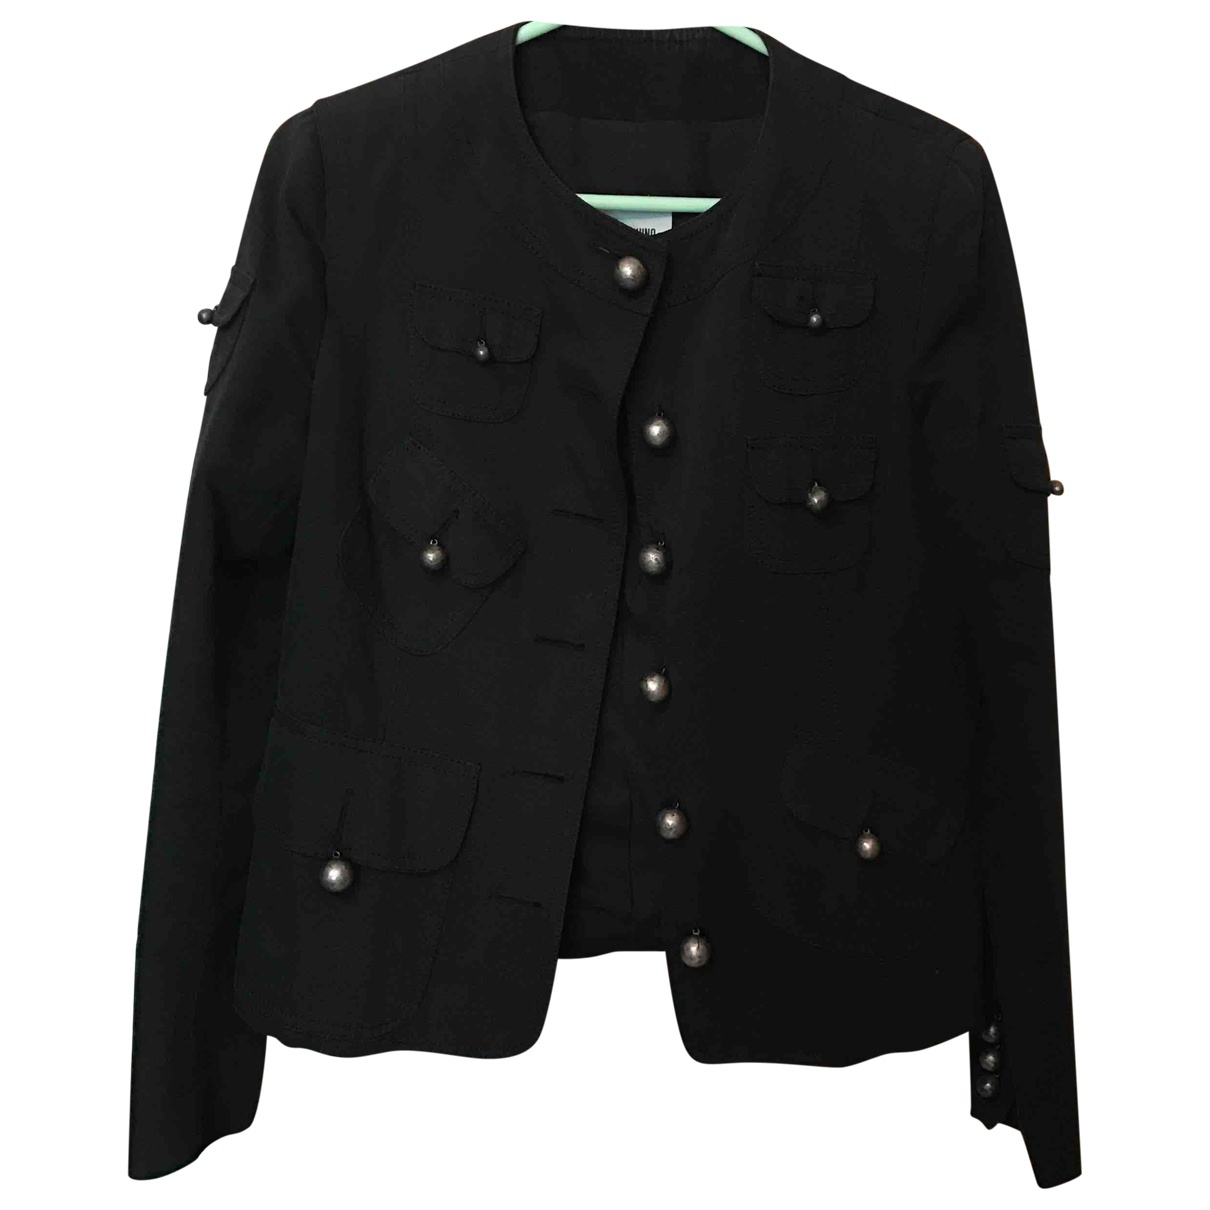 Moschino Cheap And Chic \N Black Cotton jacket for Women 44 IT